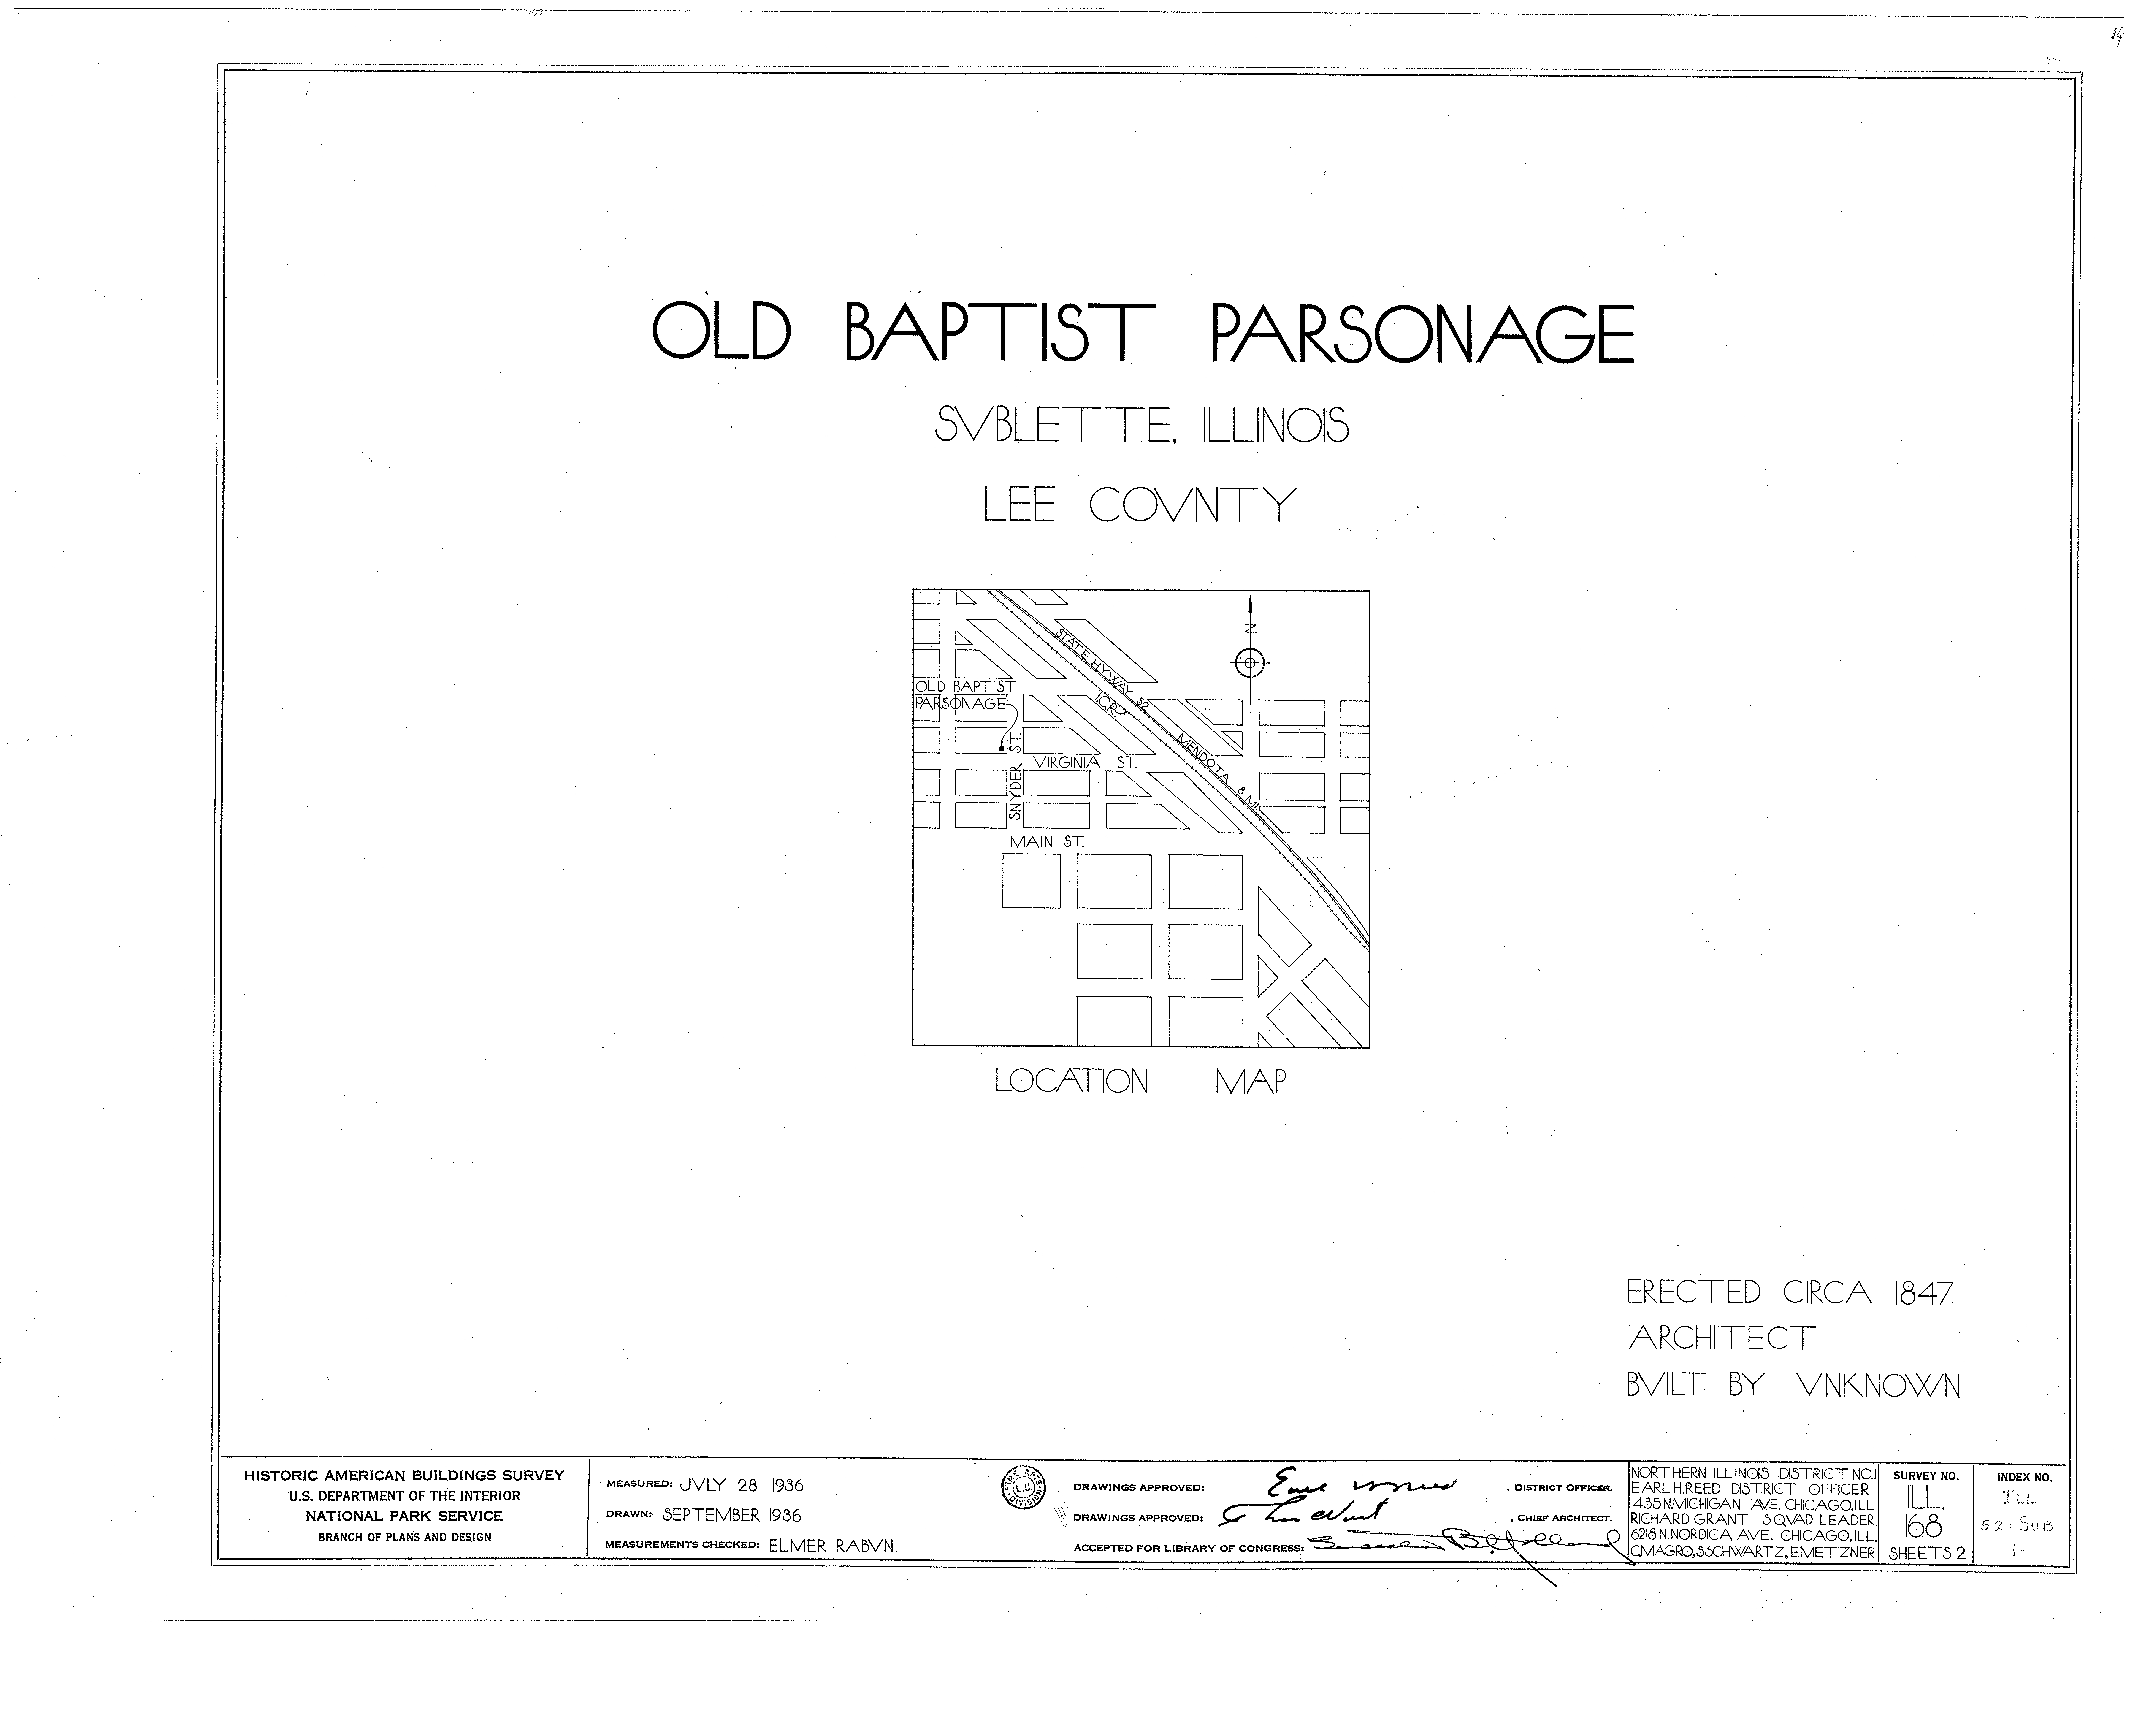 Illinois lee county lee - File Old Baptist Parsonage Snyder And Virginia Streets Sublette Lee County